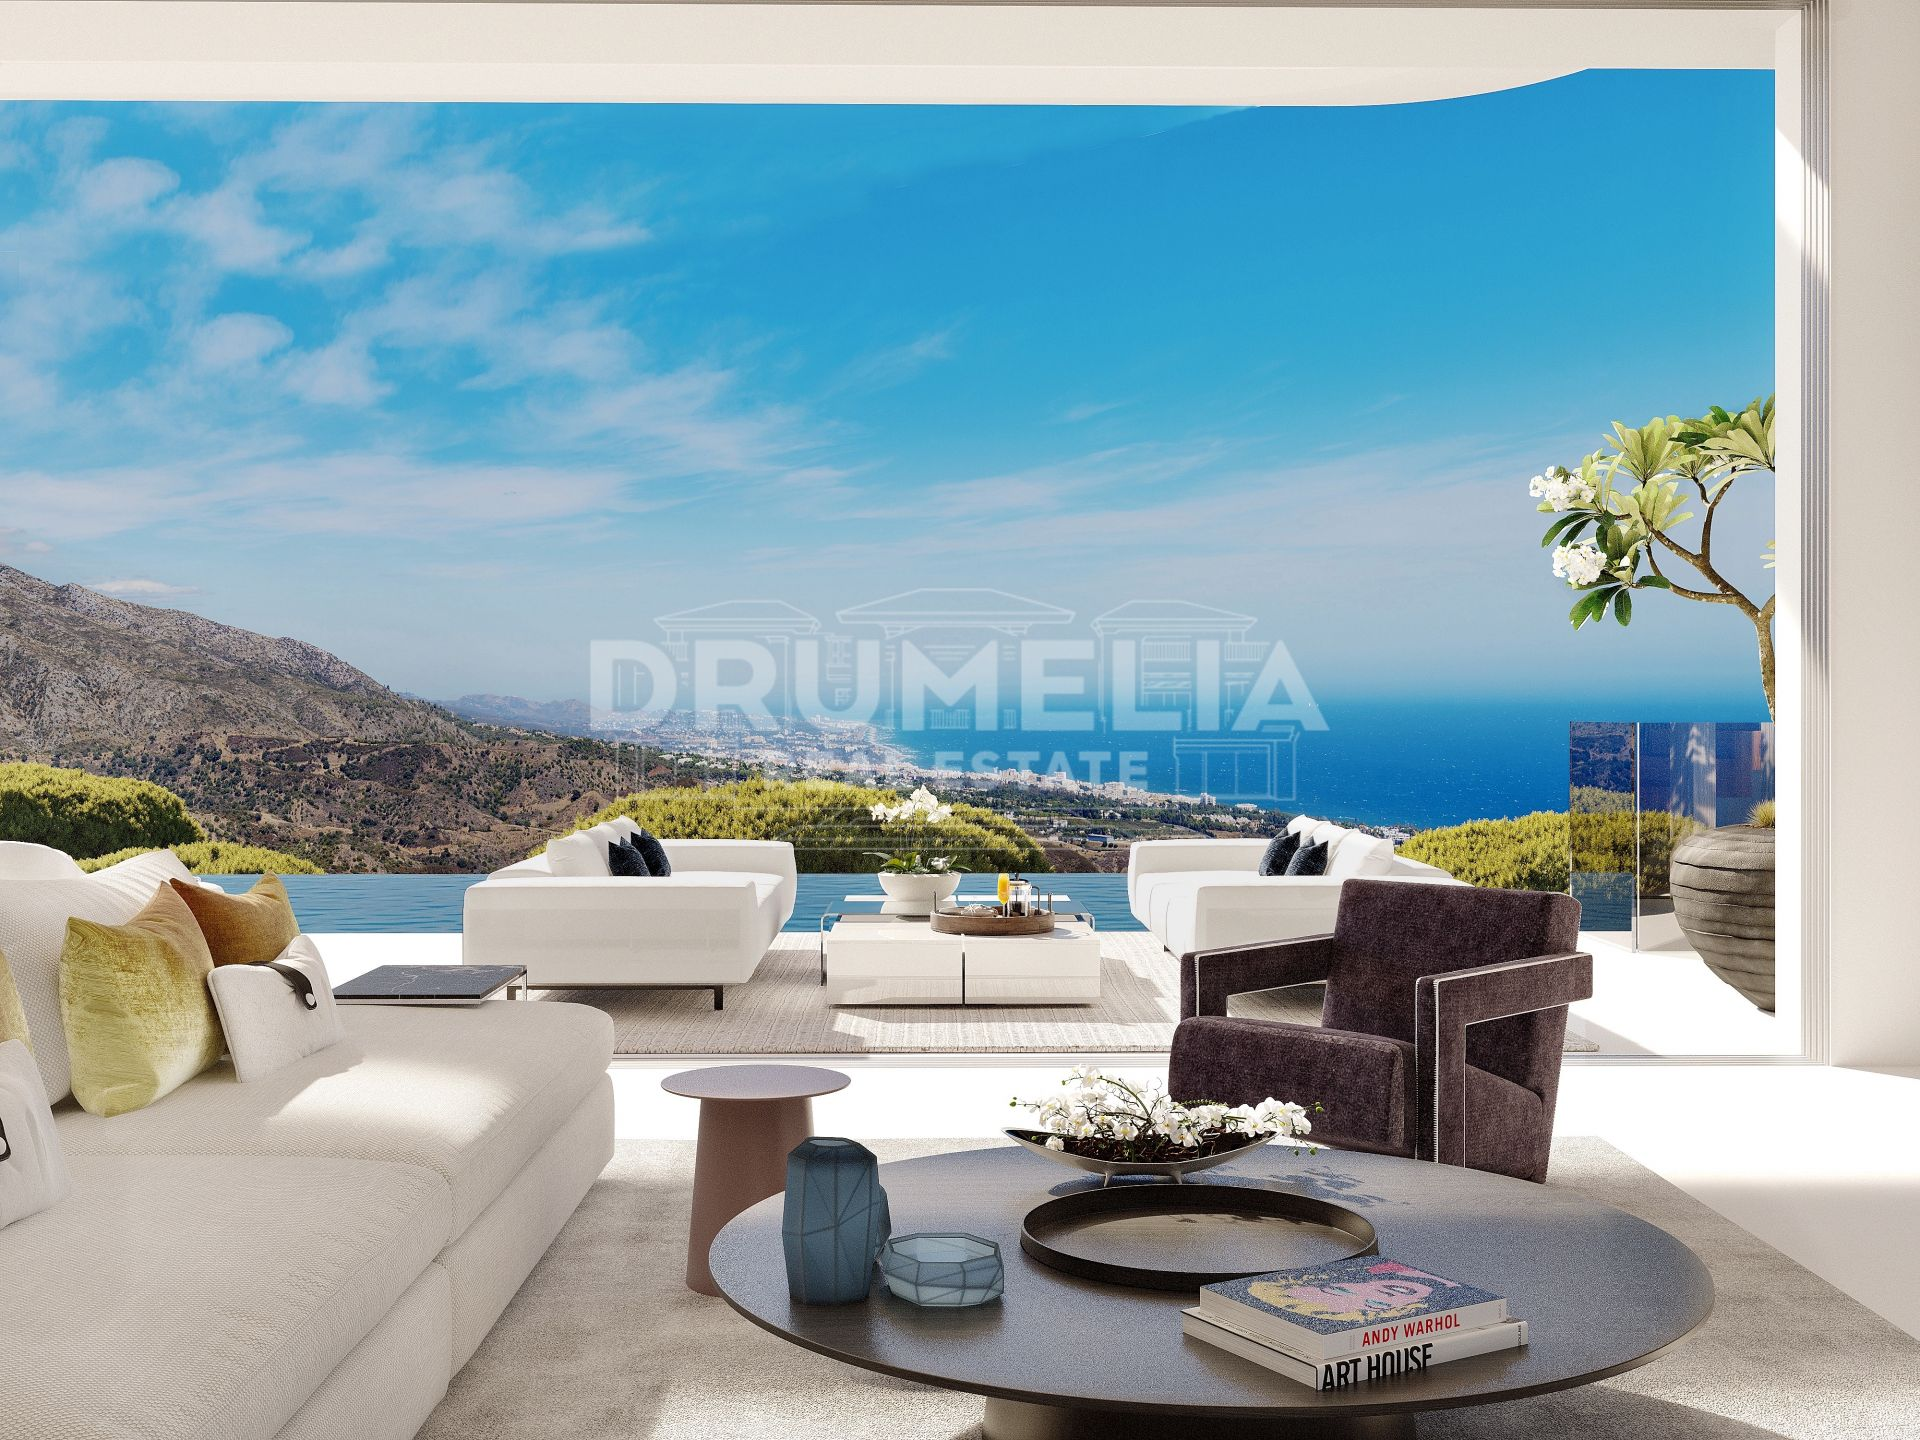 Benahavis, 18 Sustainable Villas With Sea Views, La Quinta - Benahavis